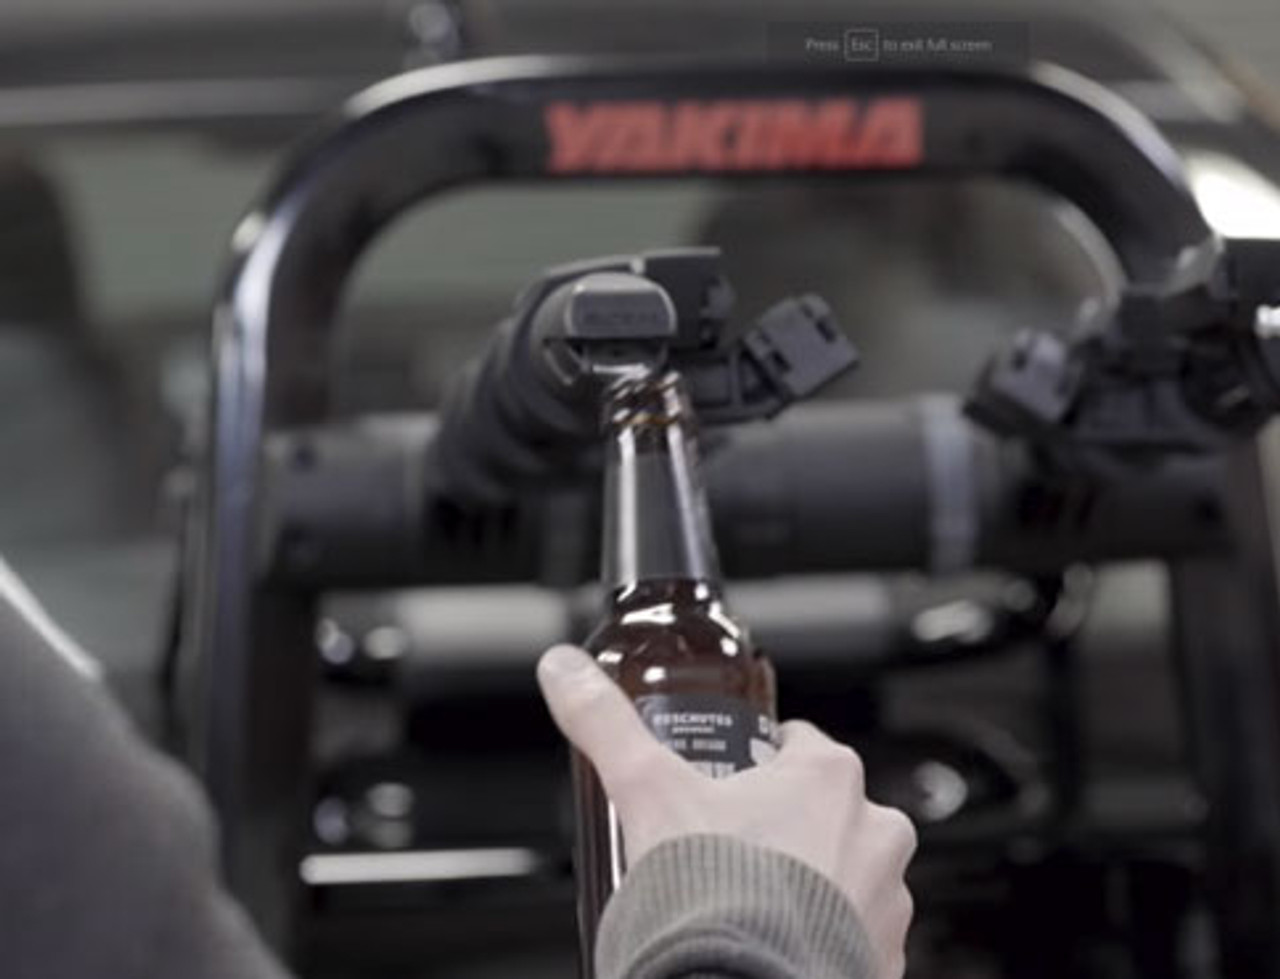 Yakima Fullback Trunk Bike Rack beer bottle opener